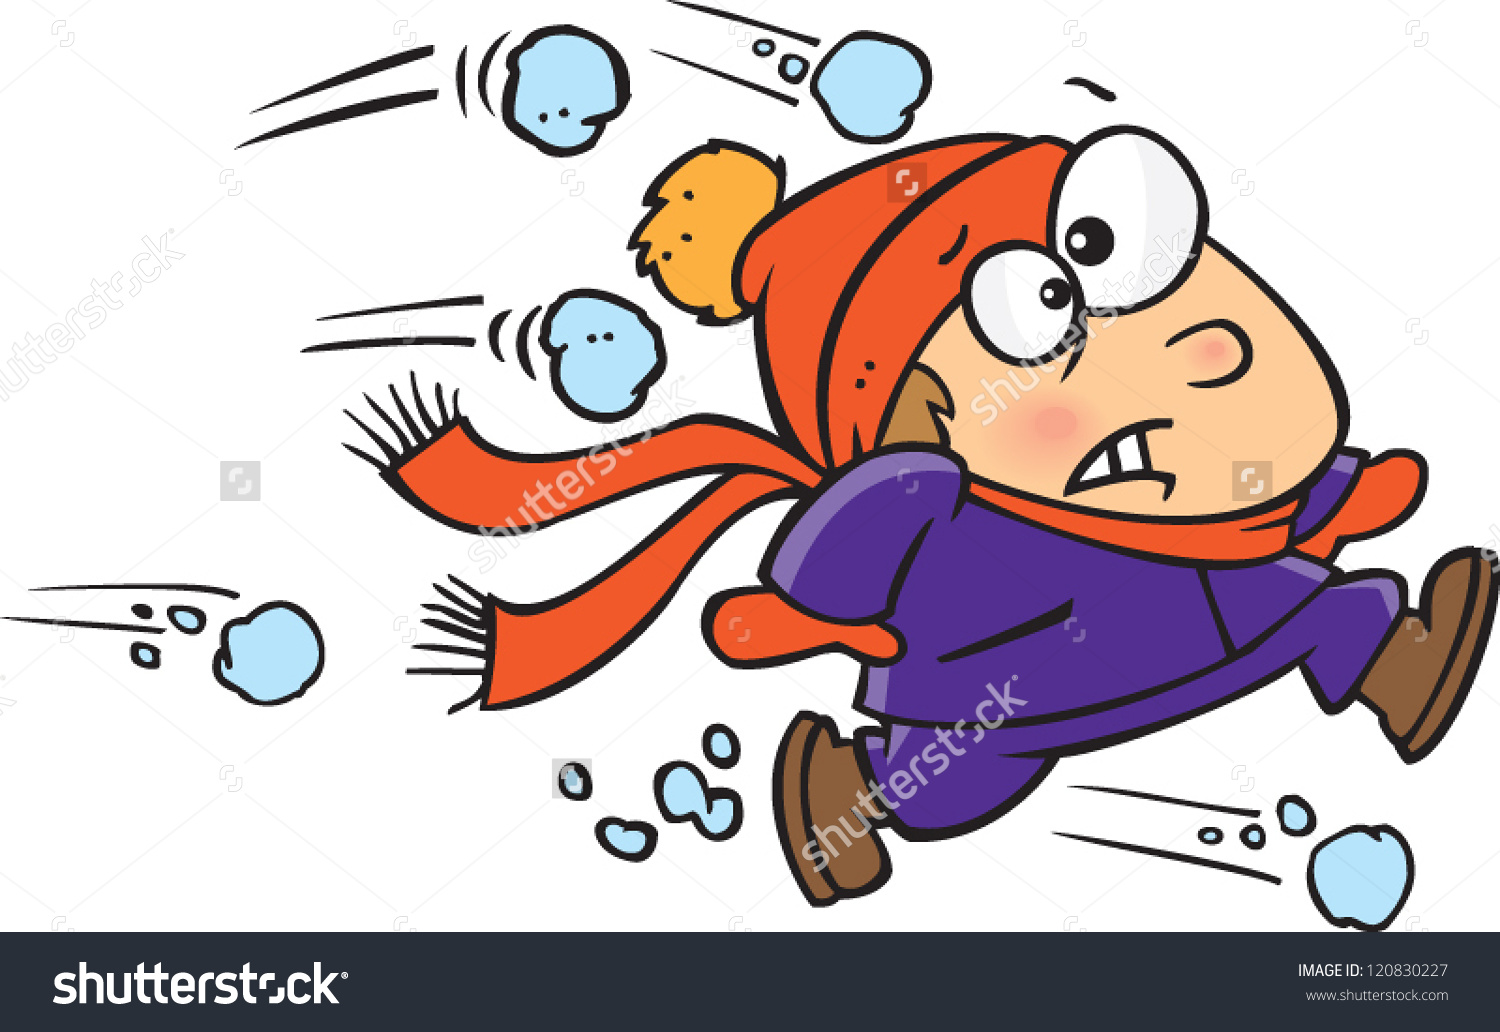 Cartoon Boy Running Away Ambush Snowballs Stock Vector 120830227.